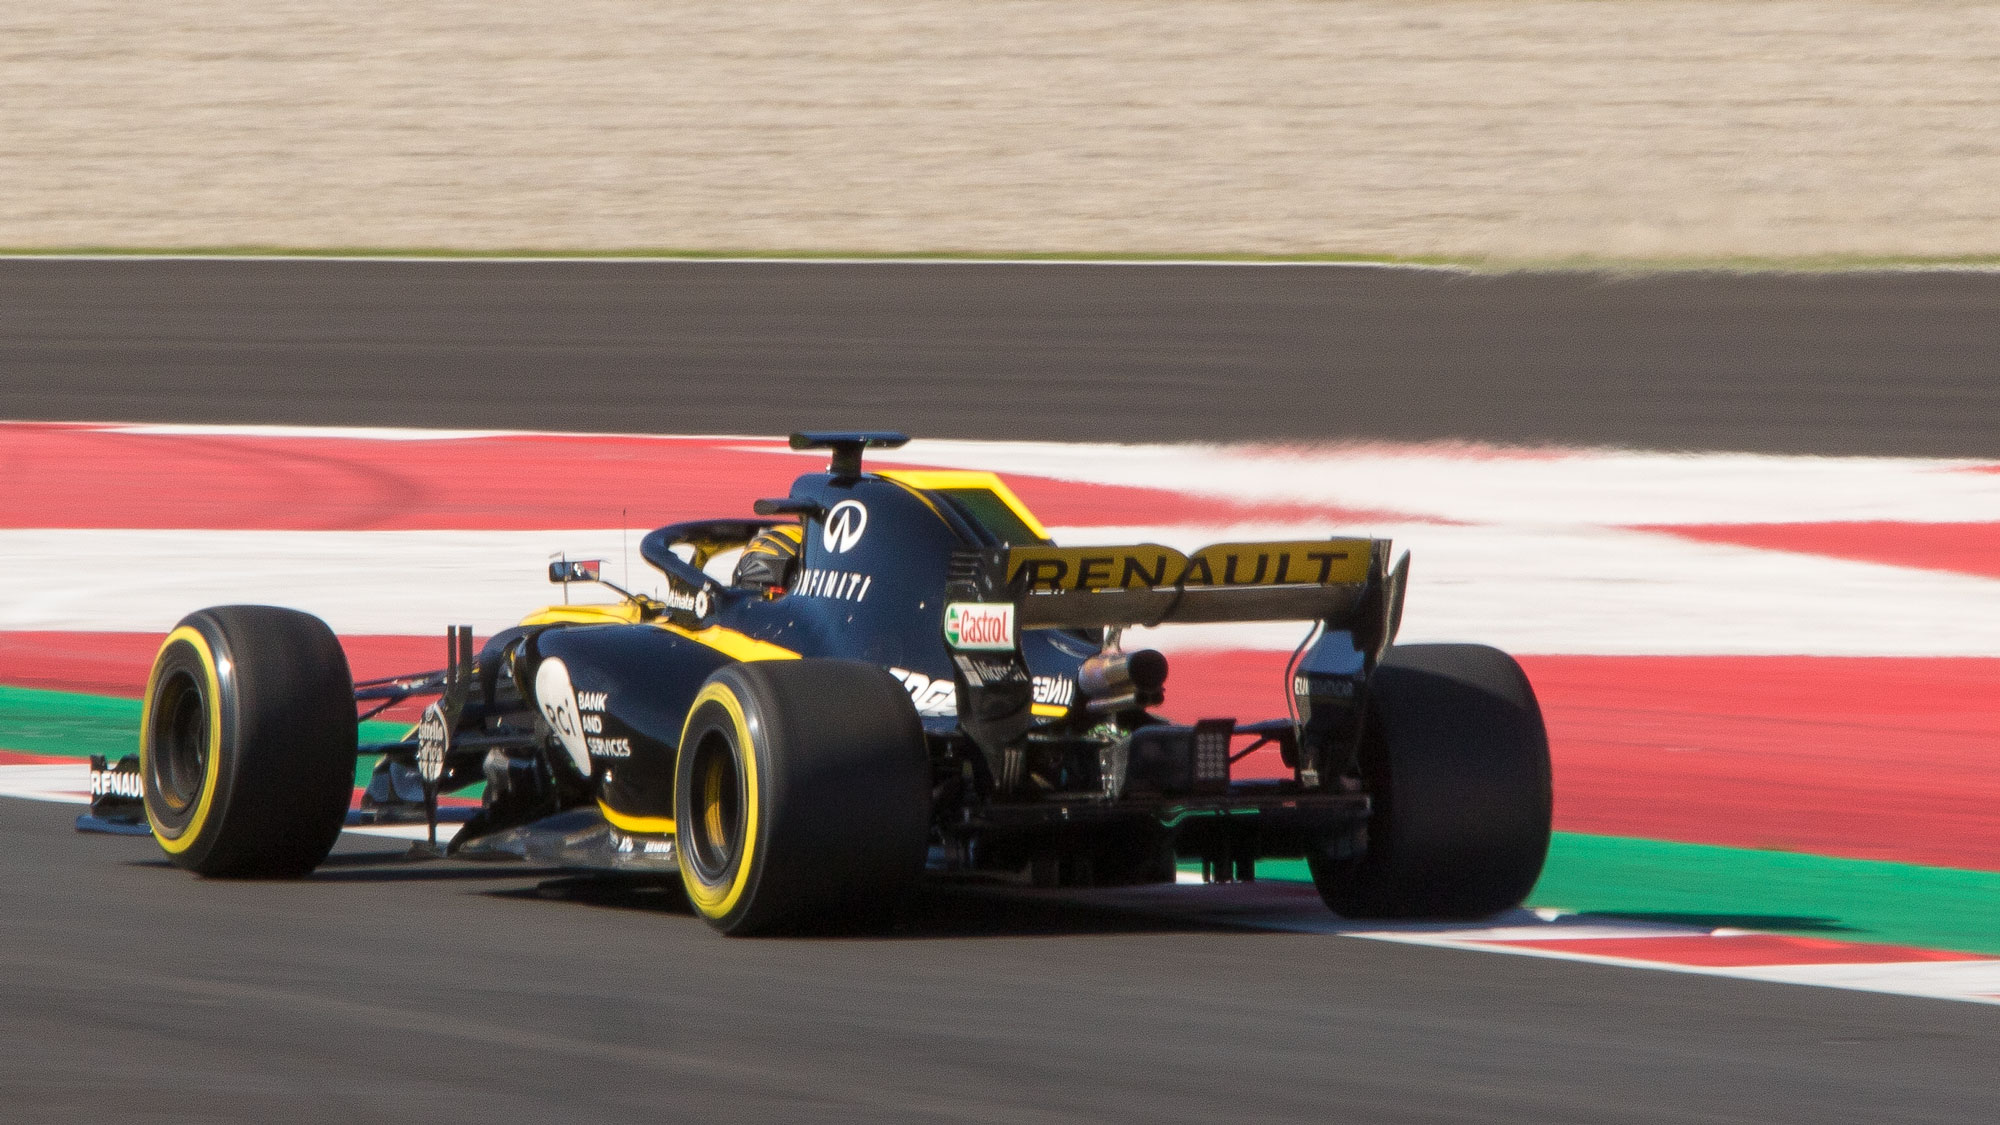 The heat haze at the rear of the 2018 Renault F1 car illustrates the effect of the exhaust blown rear wing. The gases are directed towards the wing to increase aerodynamic effect.